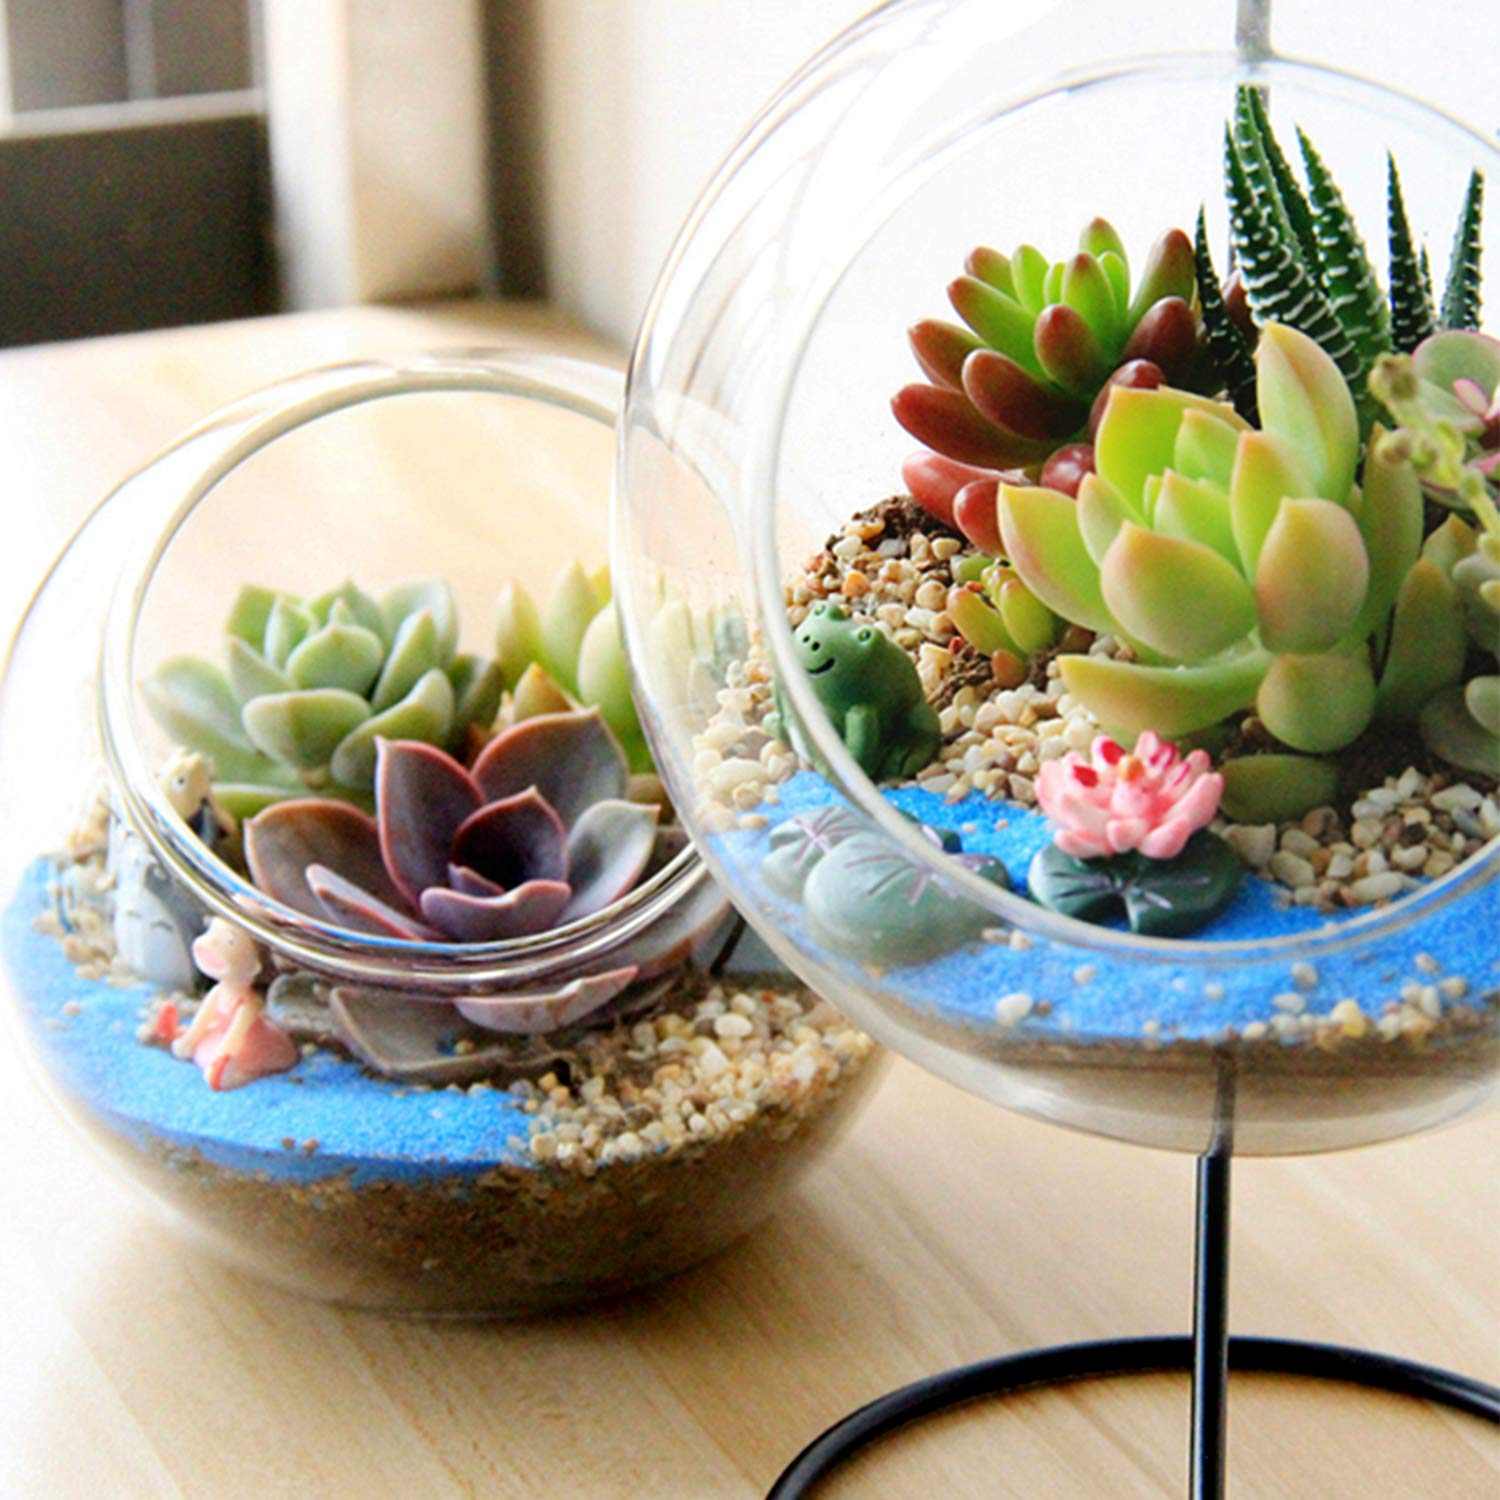 Premium Rosette Succulents, 9 Assorted Rooted Succulents in 4'' Planter Pots with Soil, Real Live Succulents Bonsai for Indoor Home Office Cactus Decor, Terrariums, Mini Garden by The Next Gardener (Image #4)